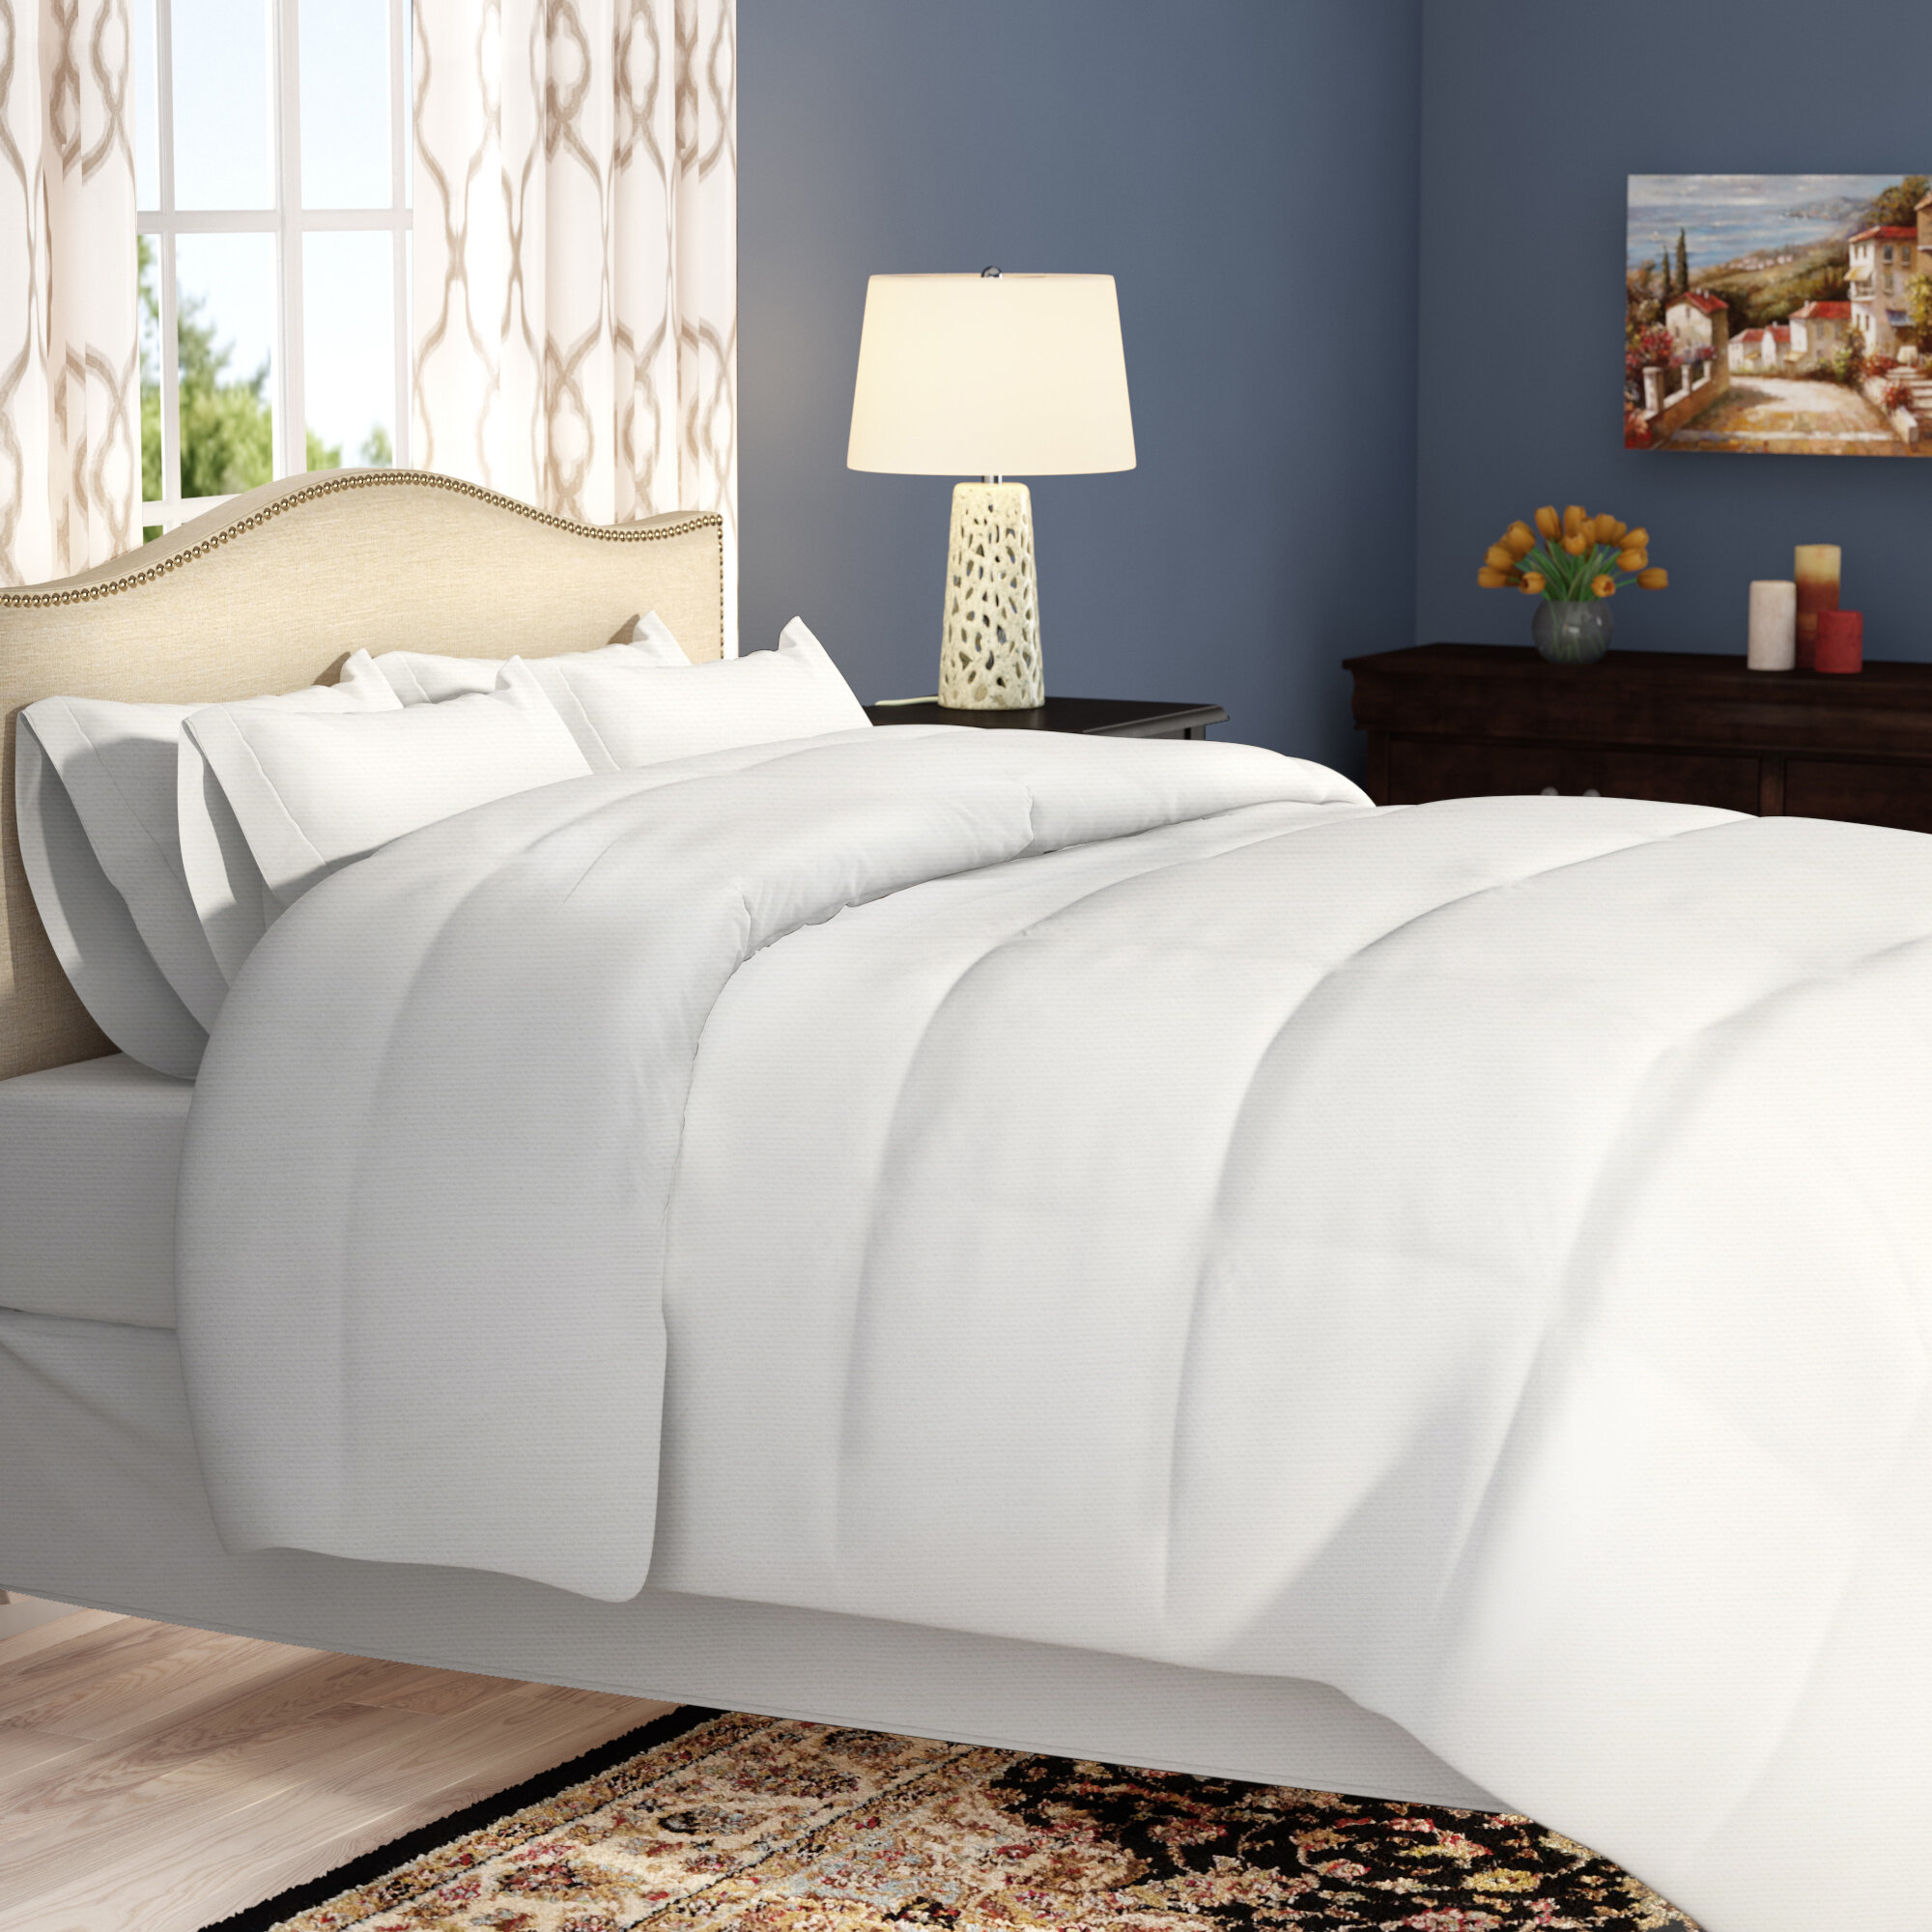 Navy White Comforters Sets Free Shipping Over 35 Wayfair